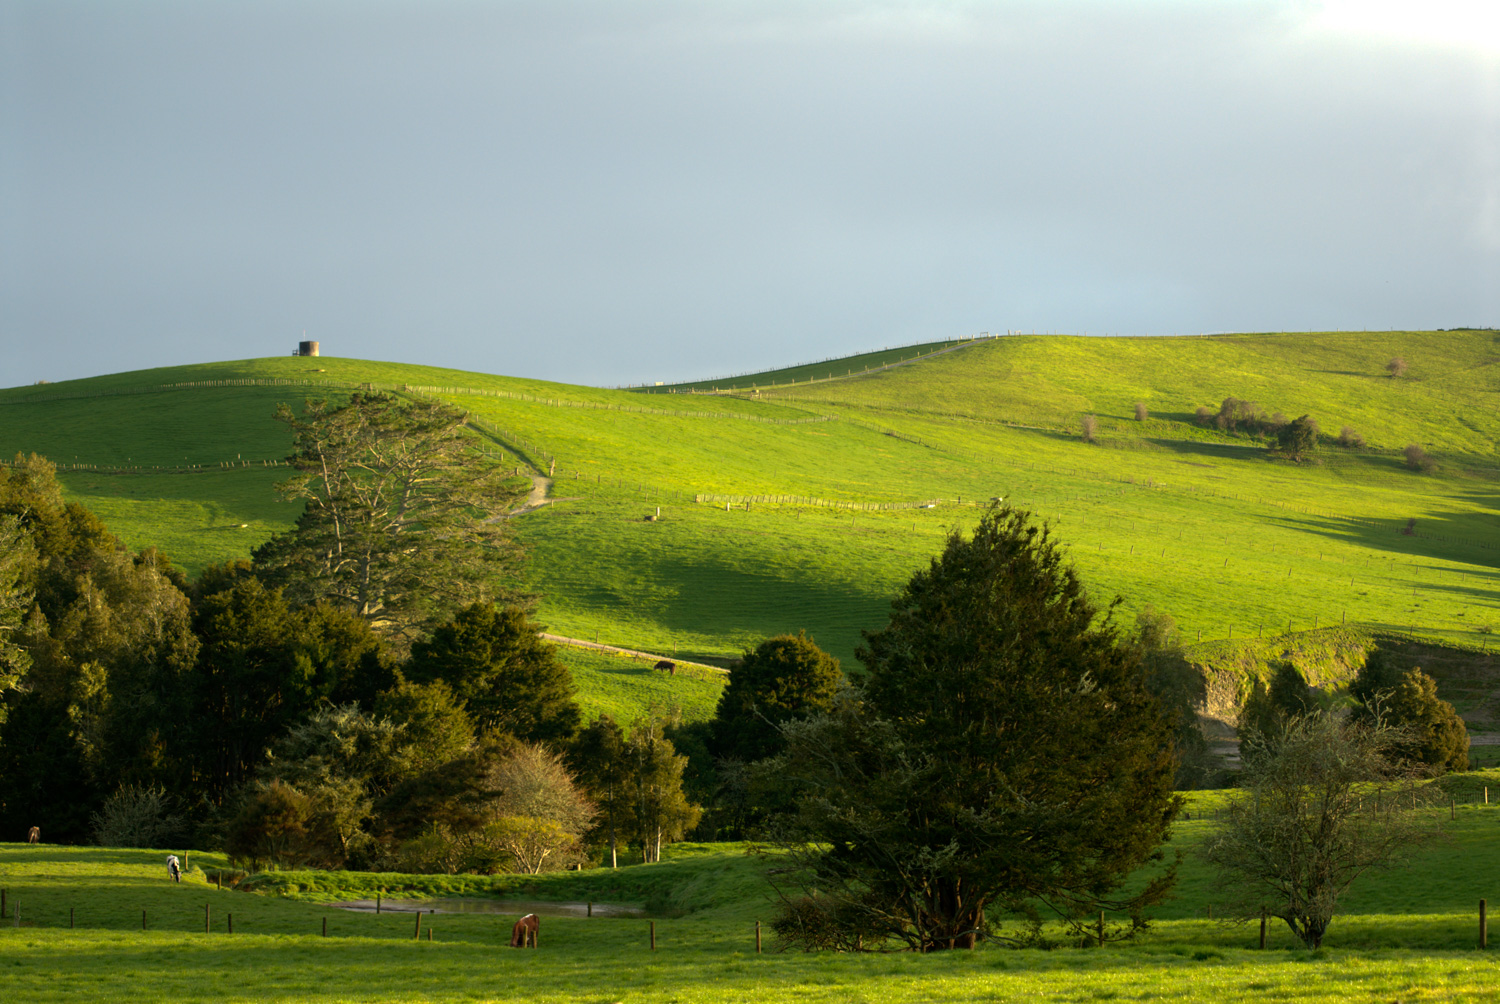 https://i0.wp.com/digital-photography-school.com/wp-content/uploads/2020/05/New-Zealand-Landscape.jpg?ssl=1